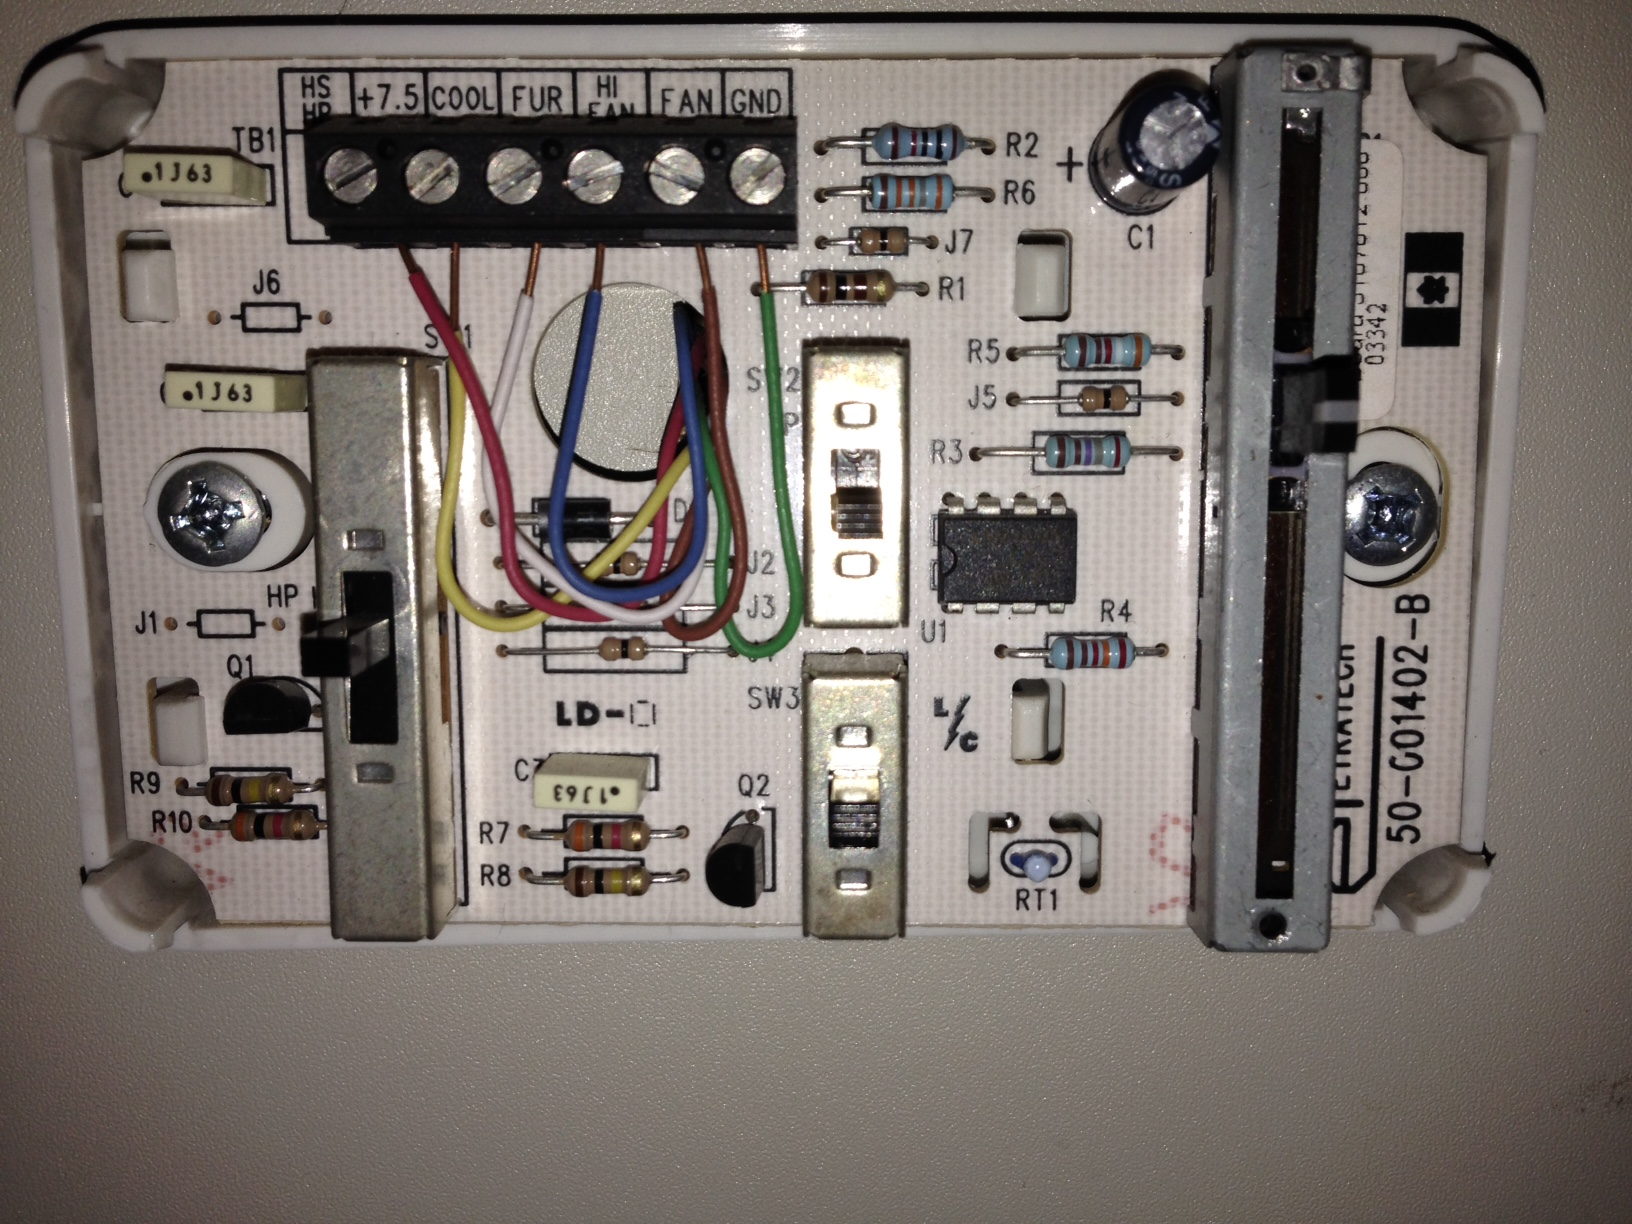 Duo Therm Analog Thermostat Wiring Diagram